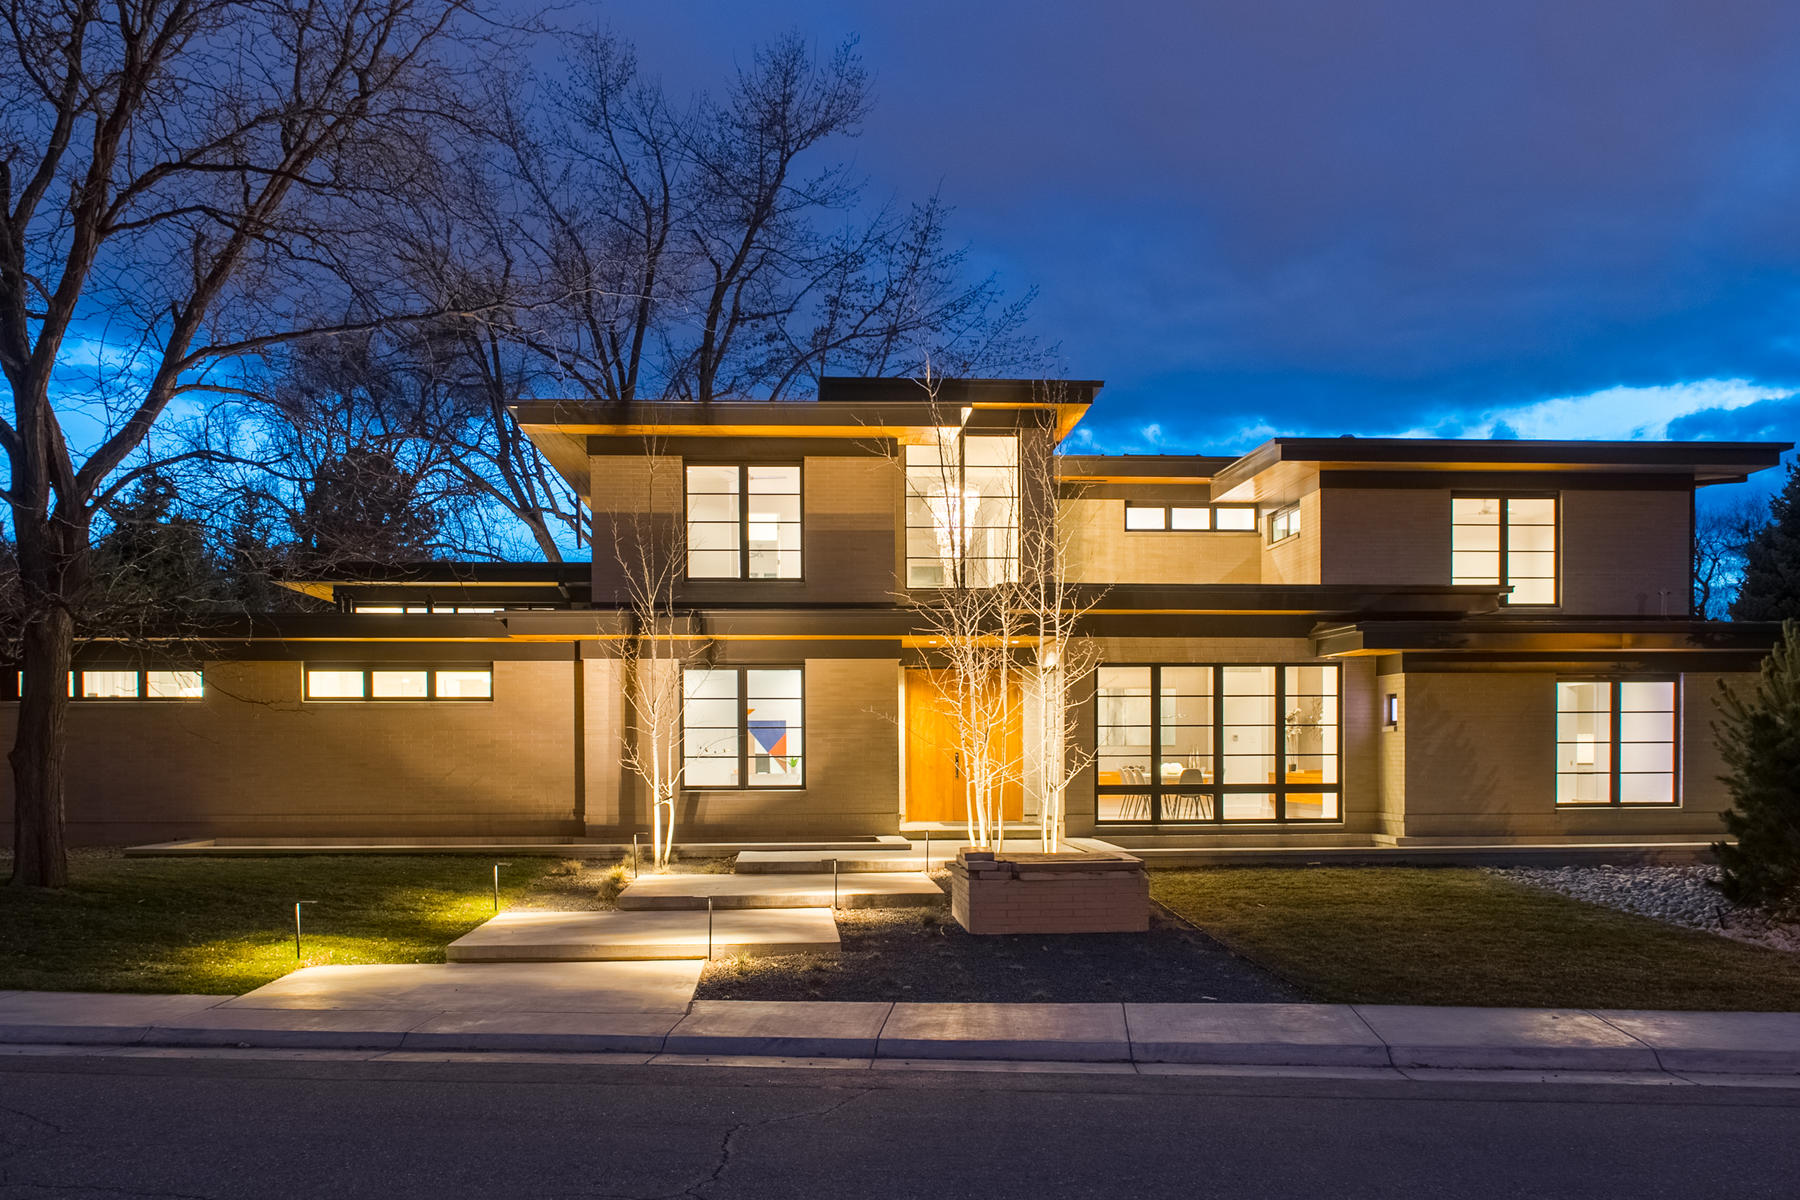 Single Family Home for Active at The Finest Ultra-Mid-Century New Construction 701 South Jackson Street Denver, Colorado 80209 United States